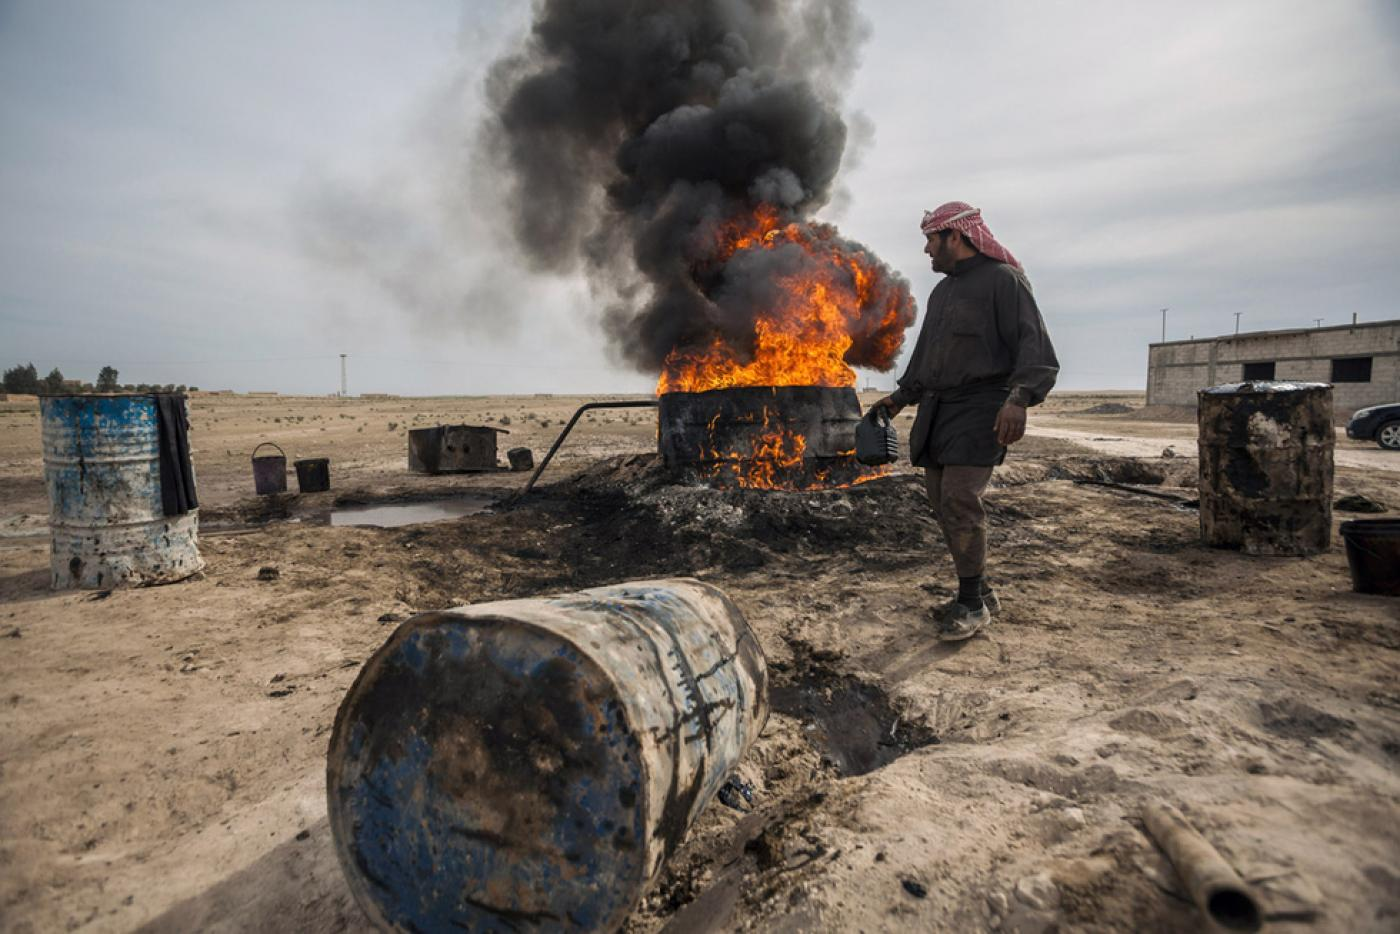 to-capture-and-subdue:-america's-theft-of-syrian-oil-has-very-little-to-do-with-money-–-global-research